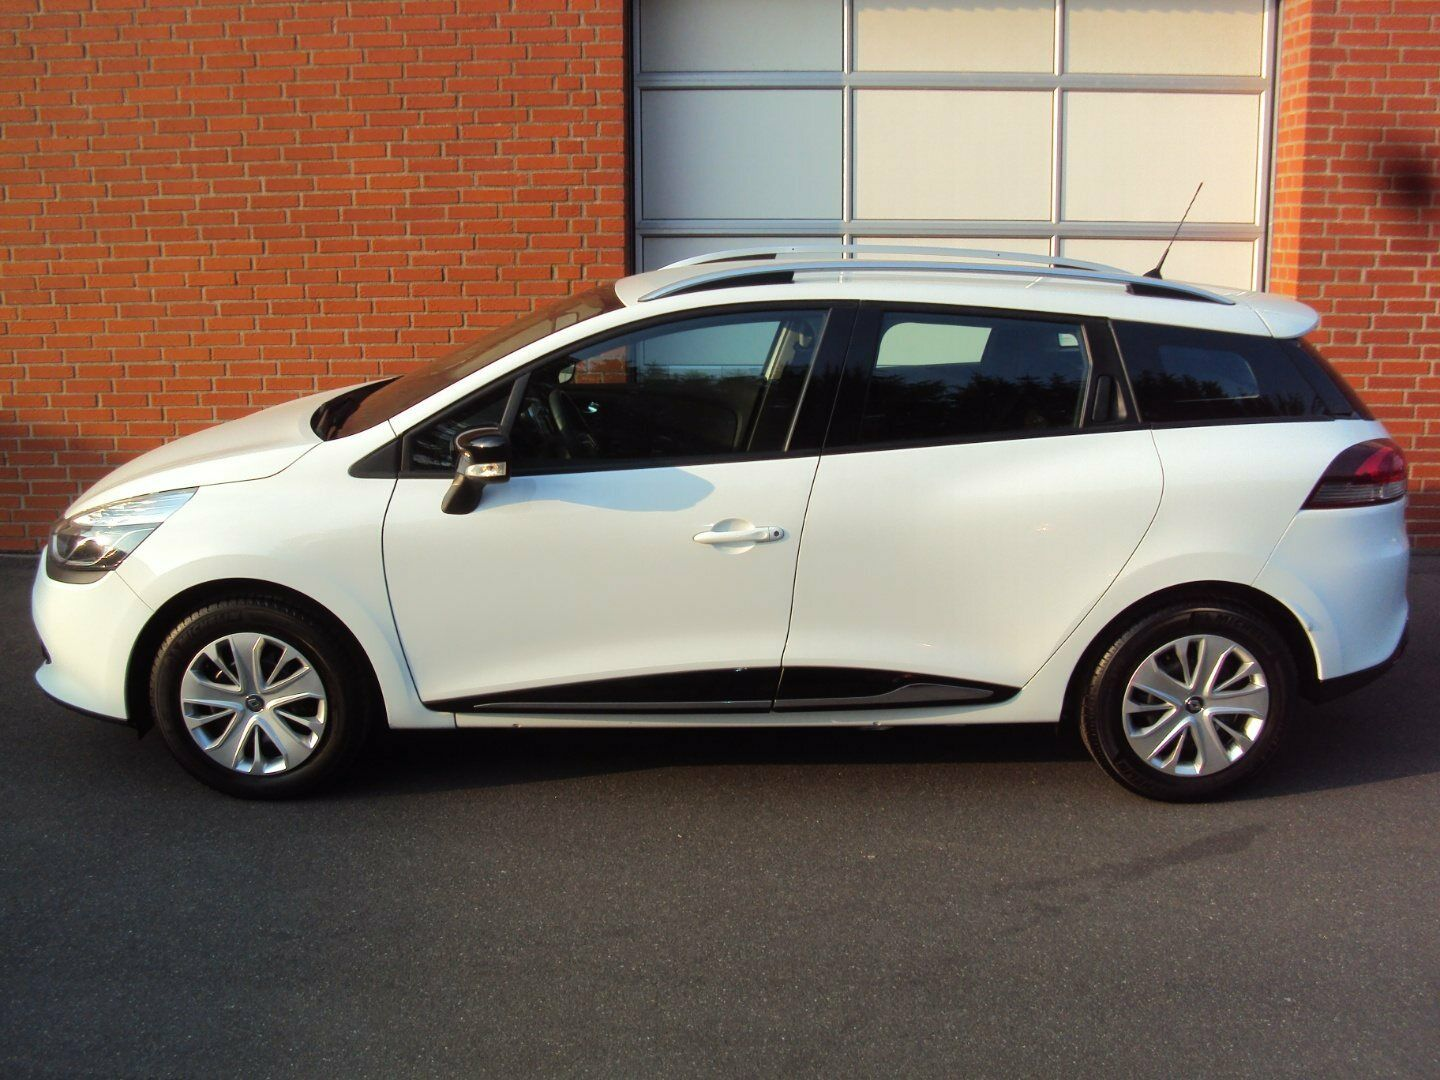 Renault Clio IV 0,9 TCe 90 Expression ST 5d - 119.900 kr.